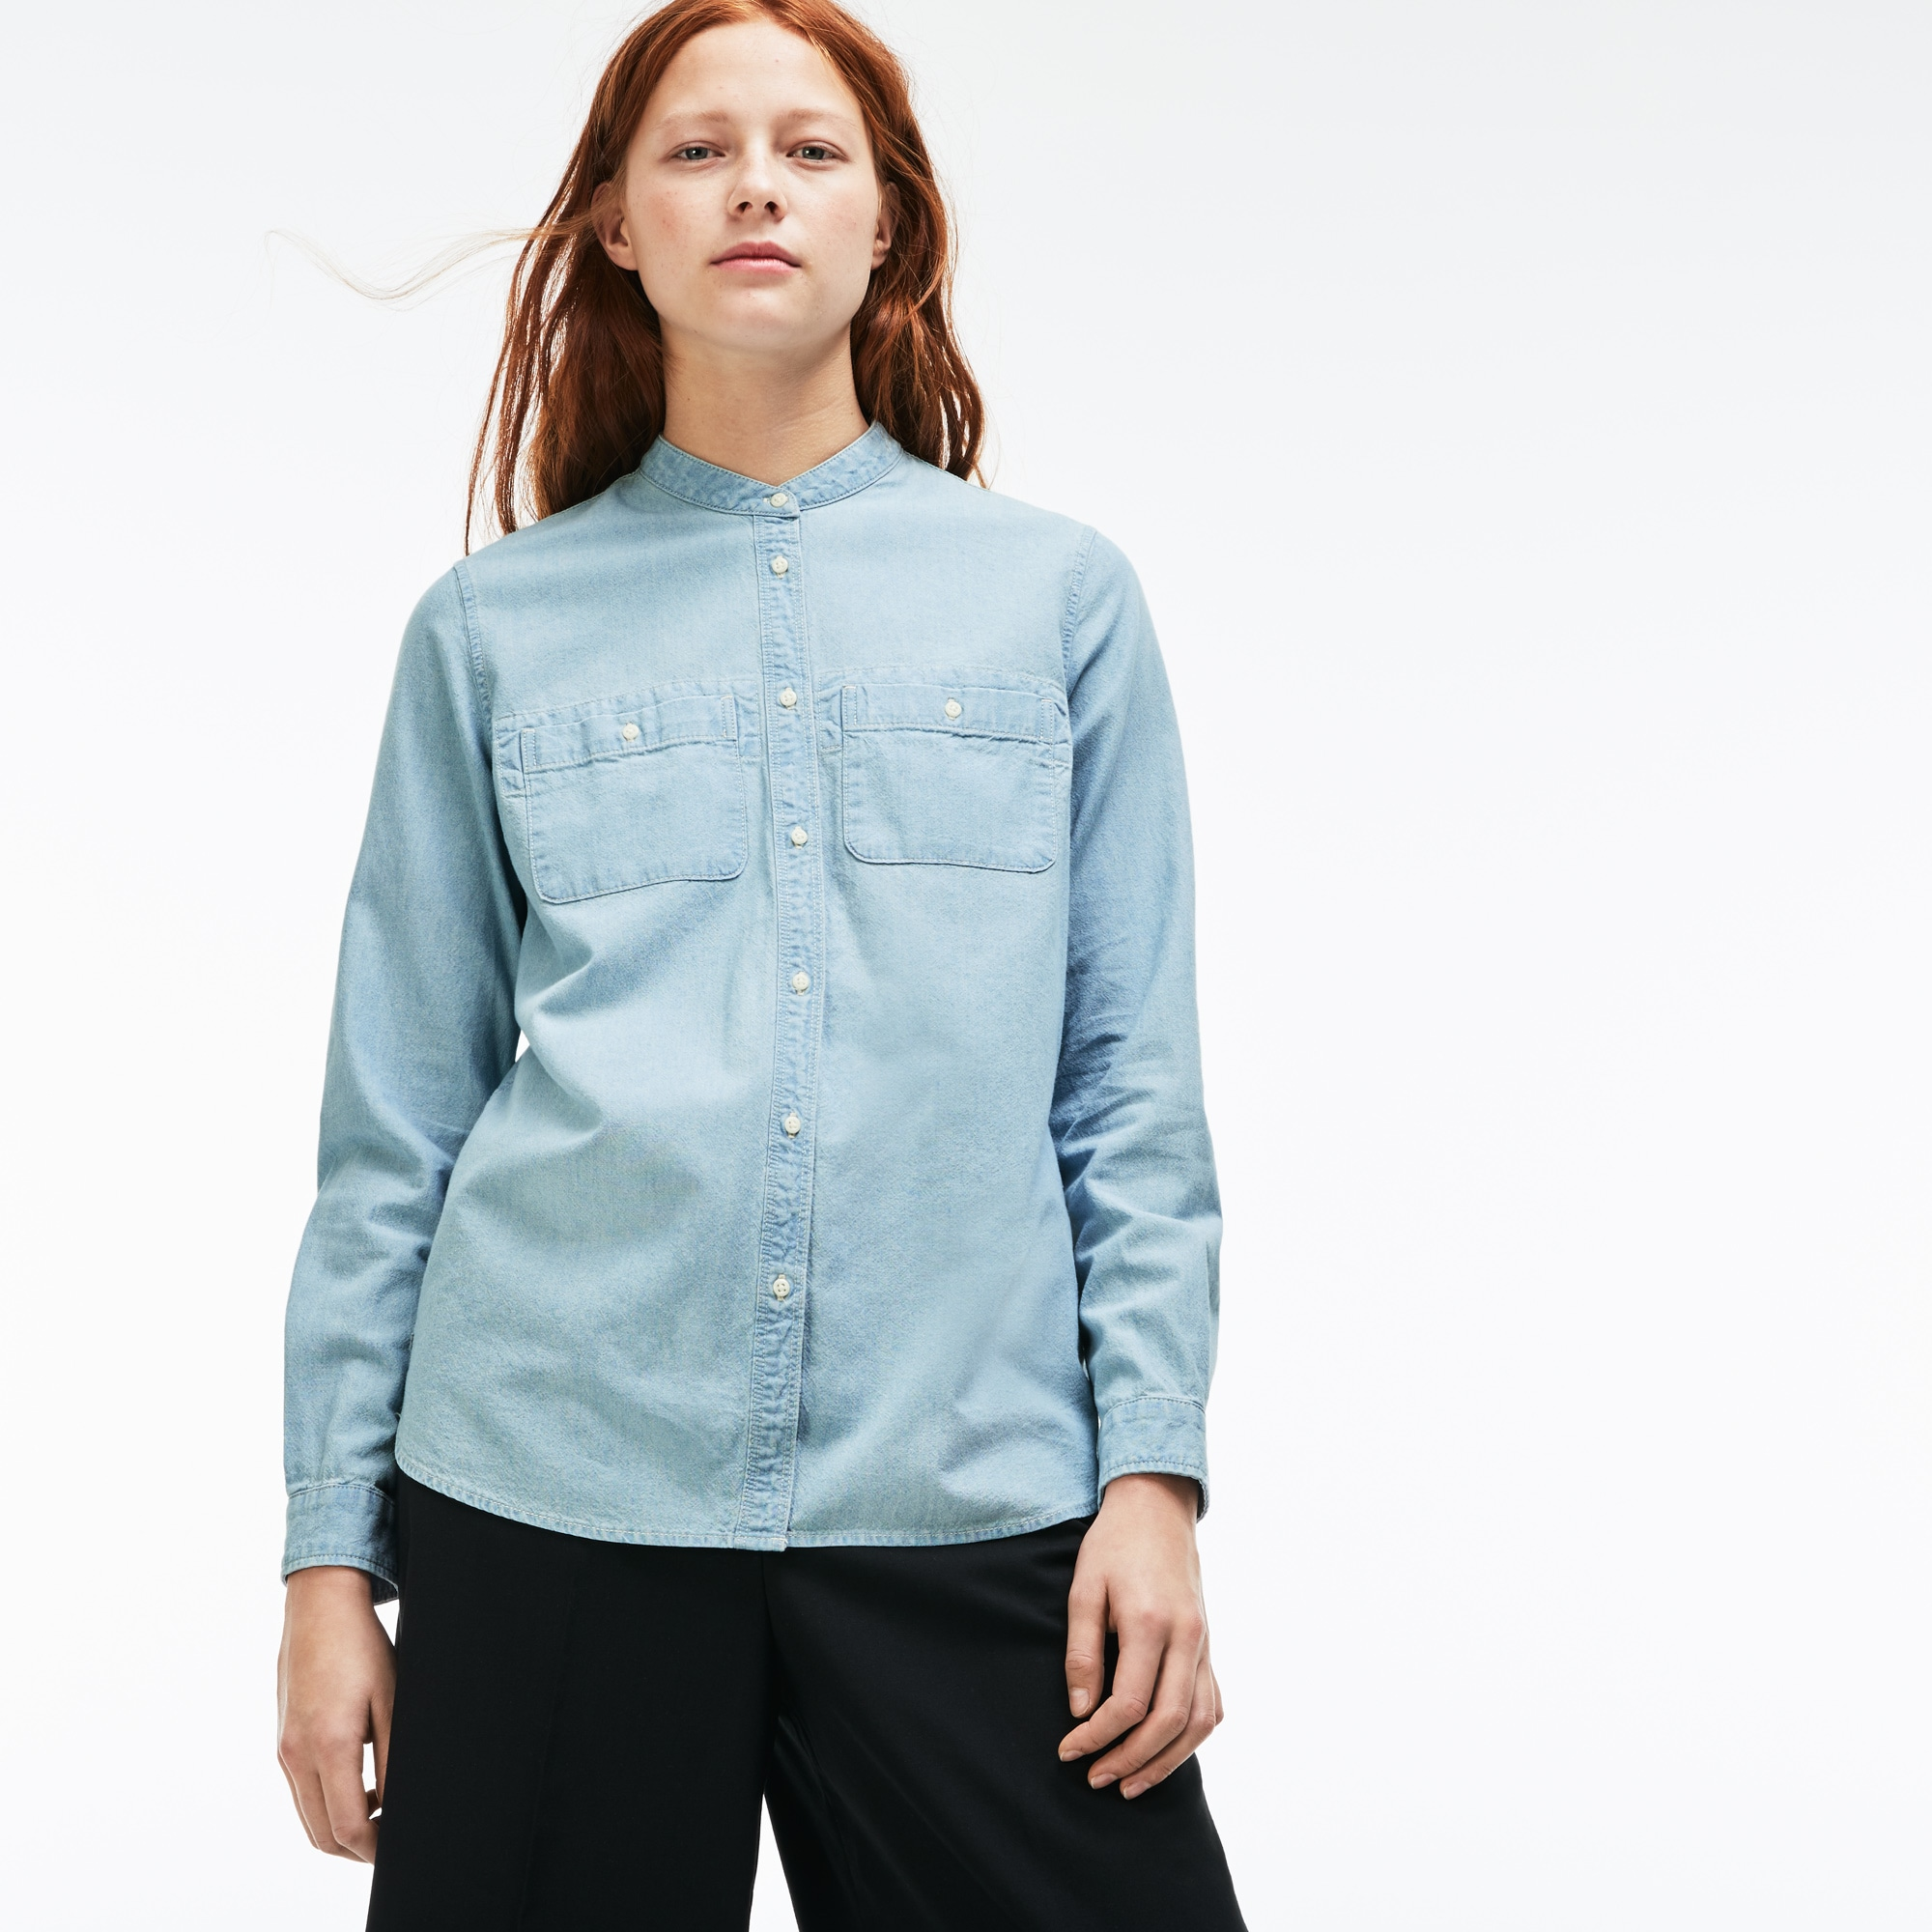 Women's Lacoste LIVE Loose Fit Chambray Shirt